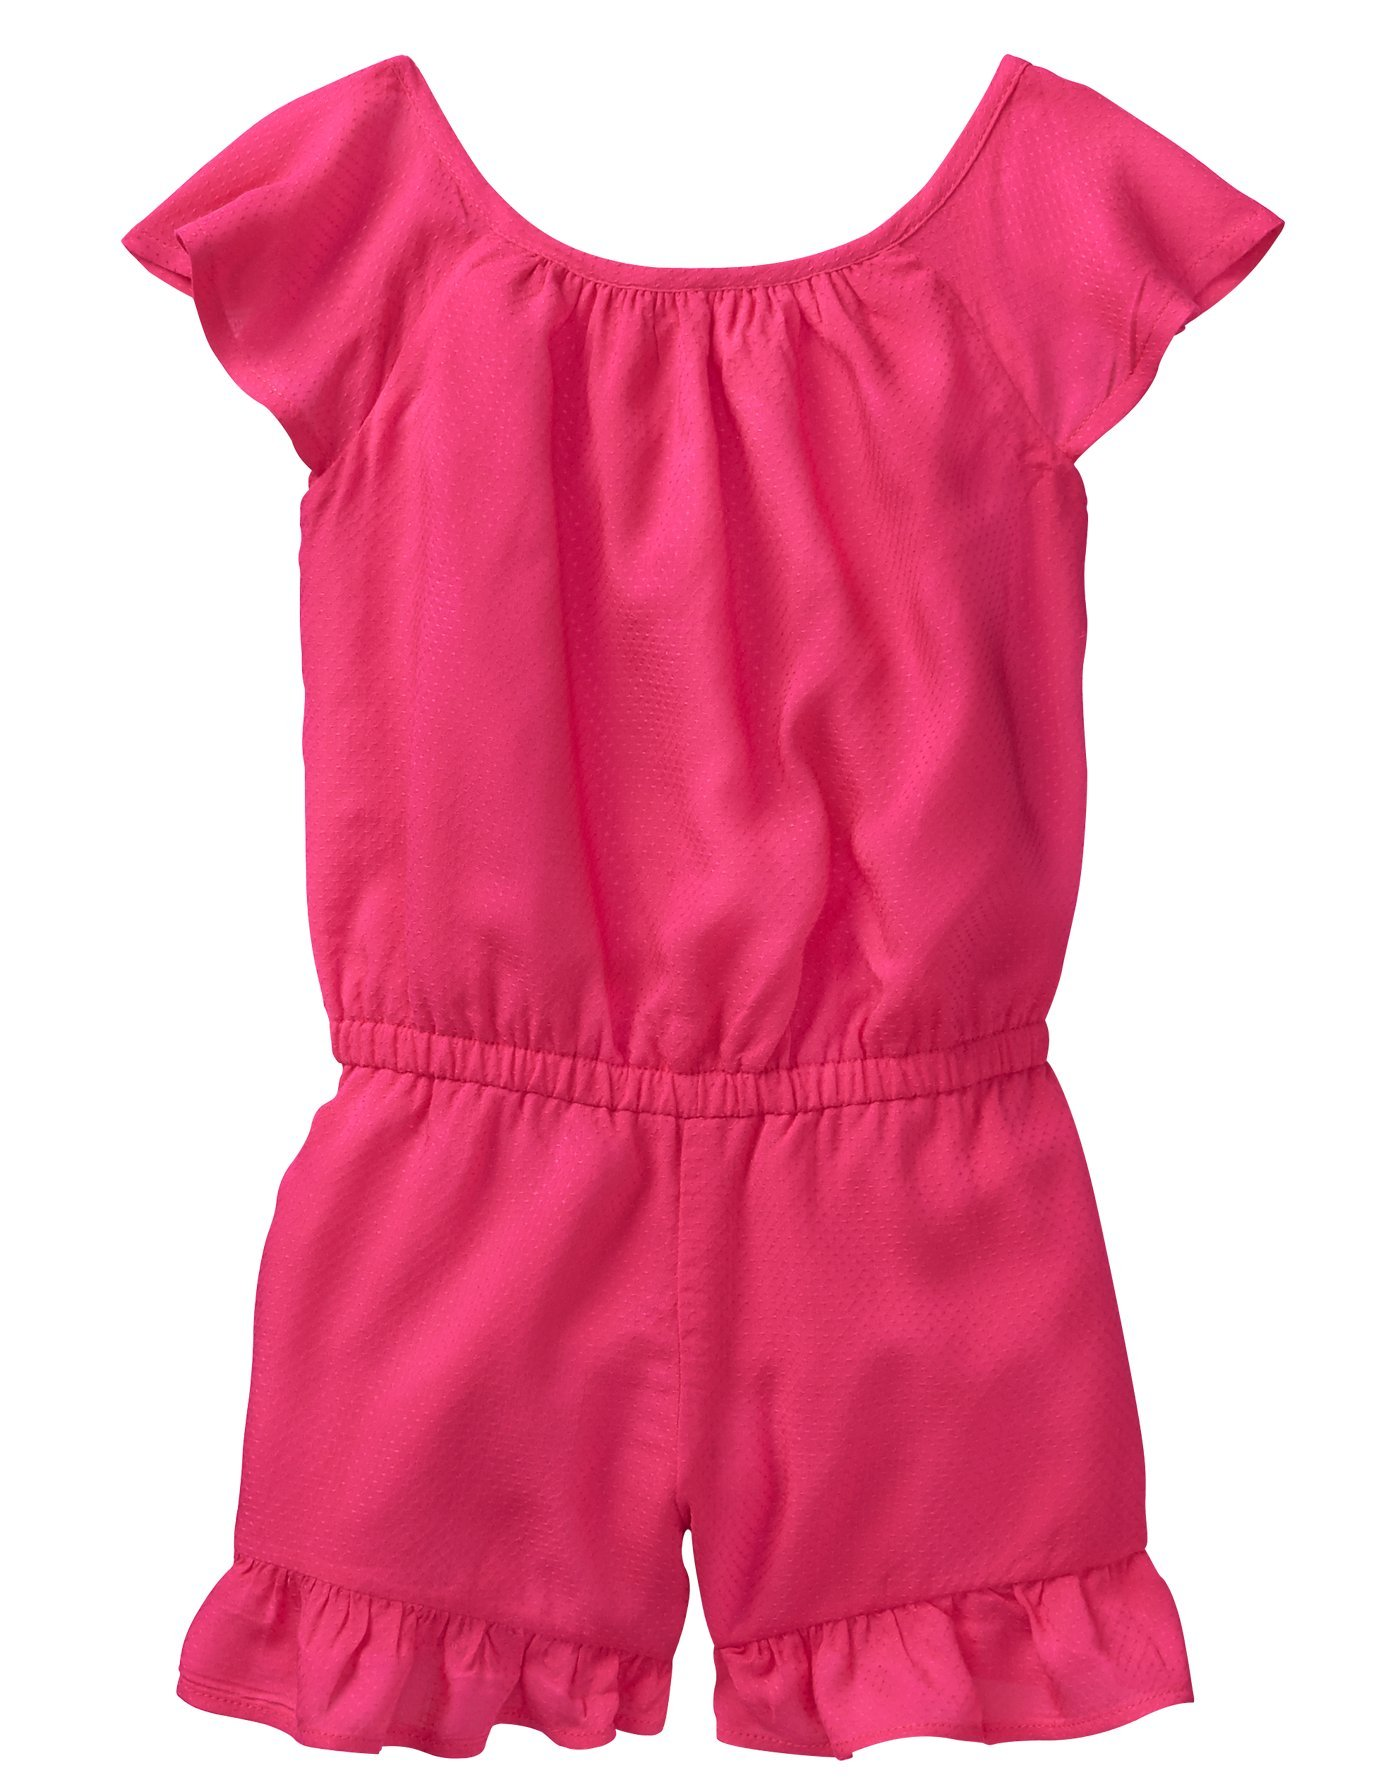 Crazy 8 Toddler Girls' Ruffle Romper, Bright Rose, 4T by Crazy 8